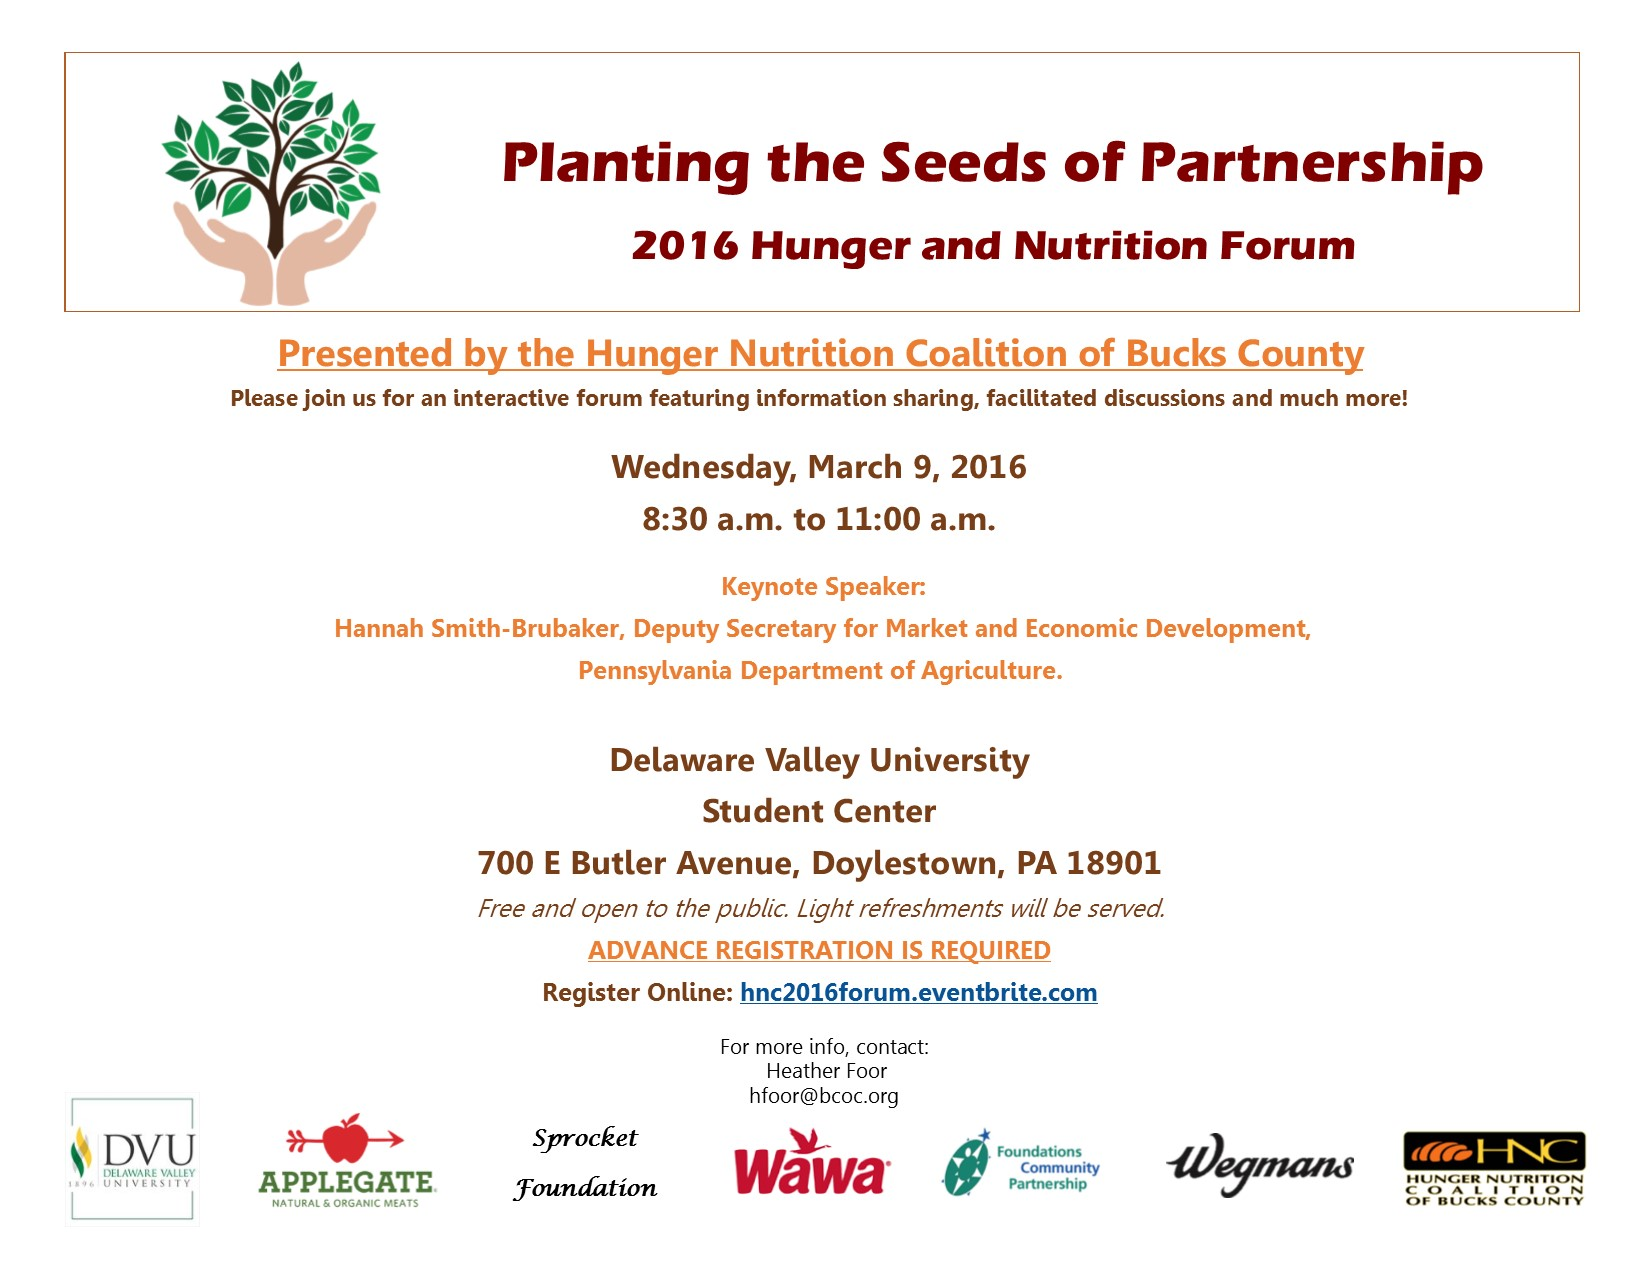 2016 Hunger and Nutrition Forum